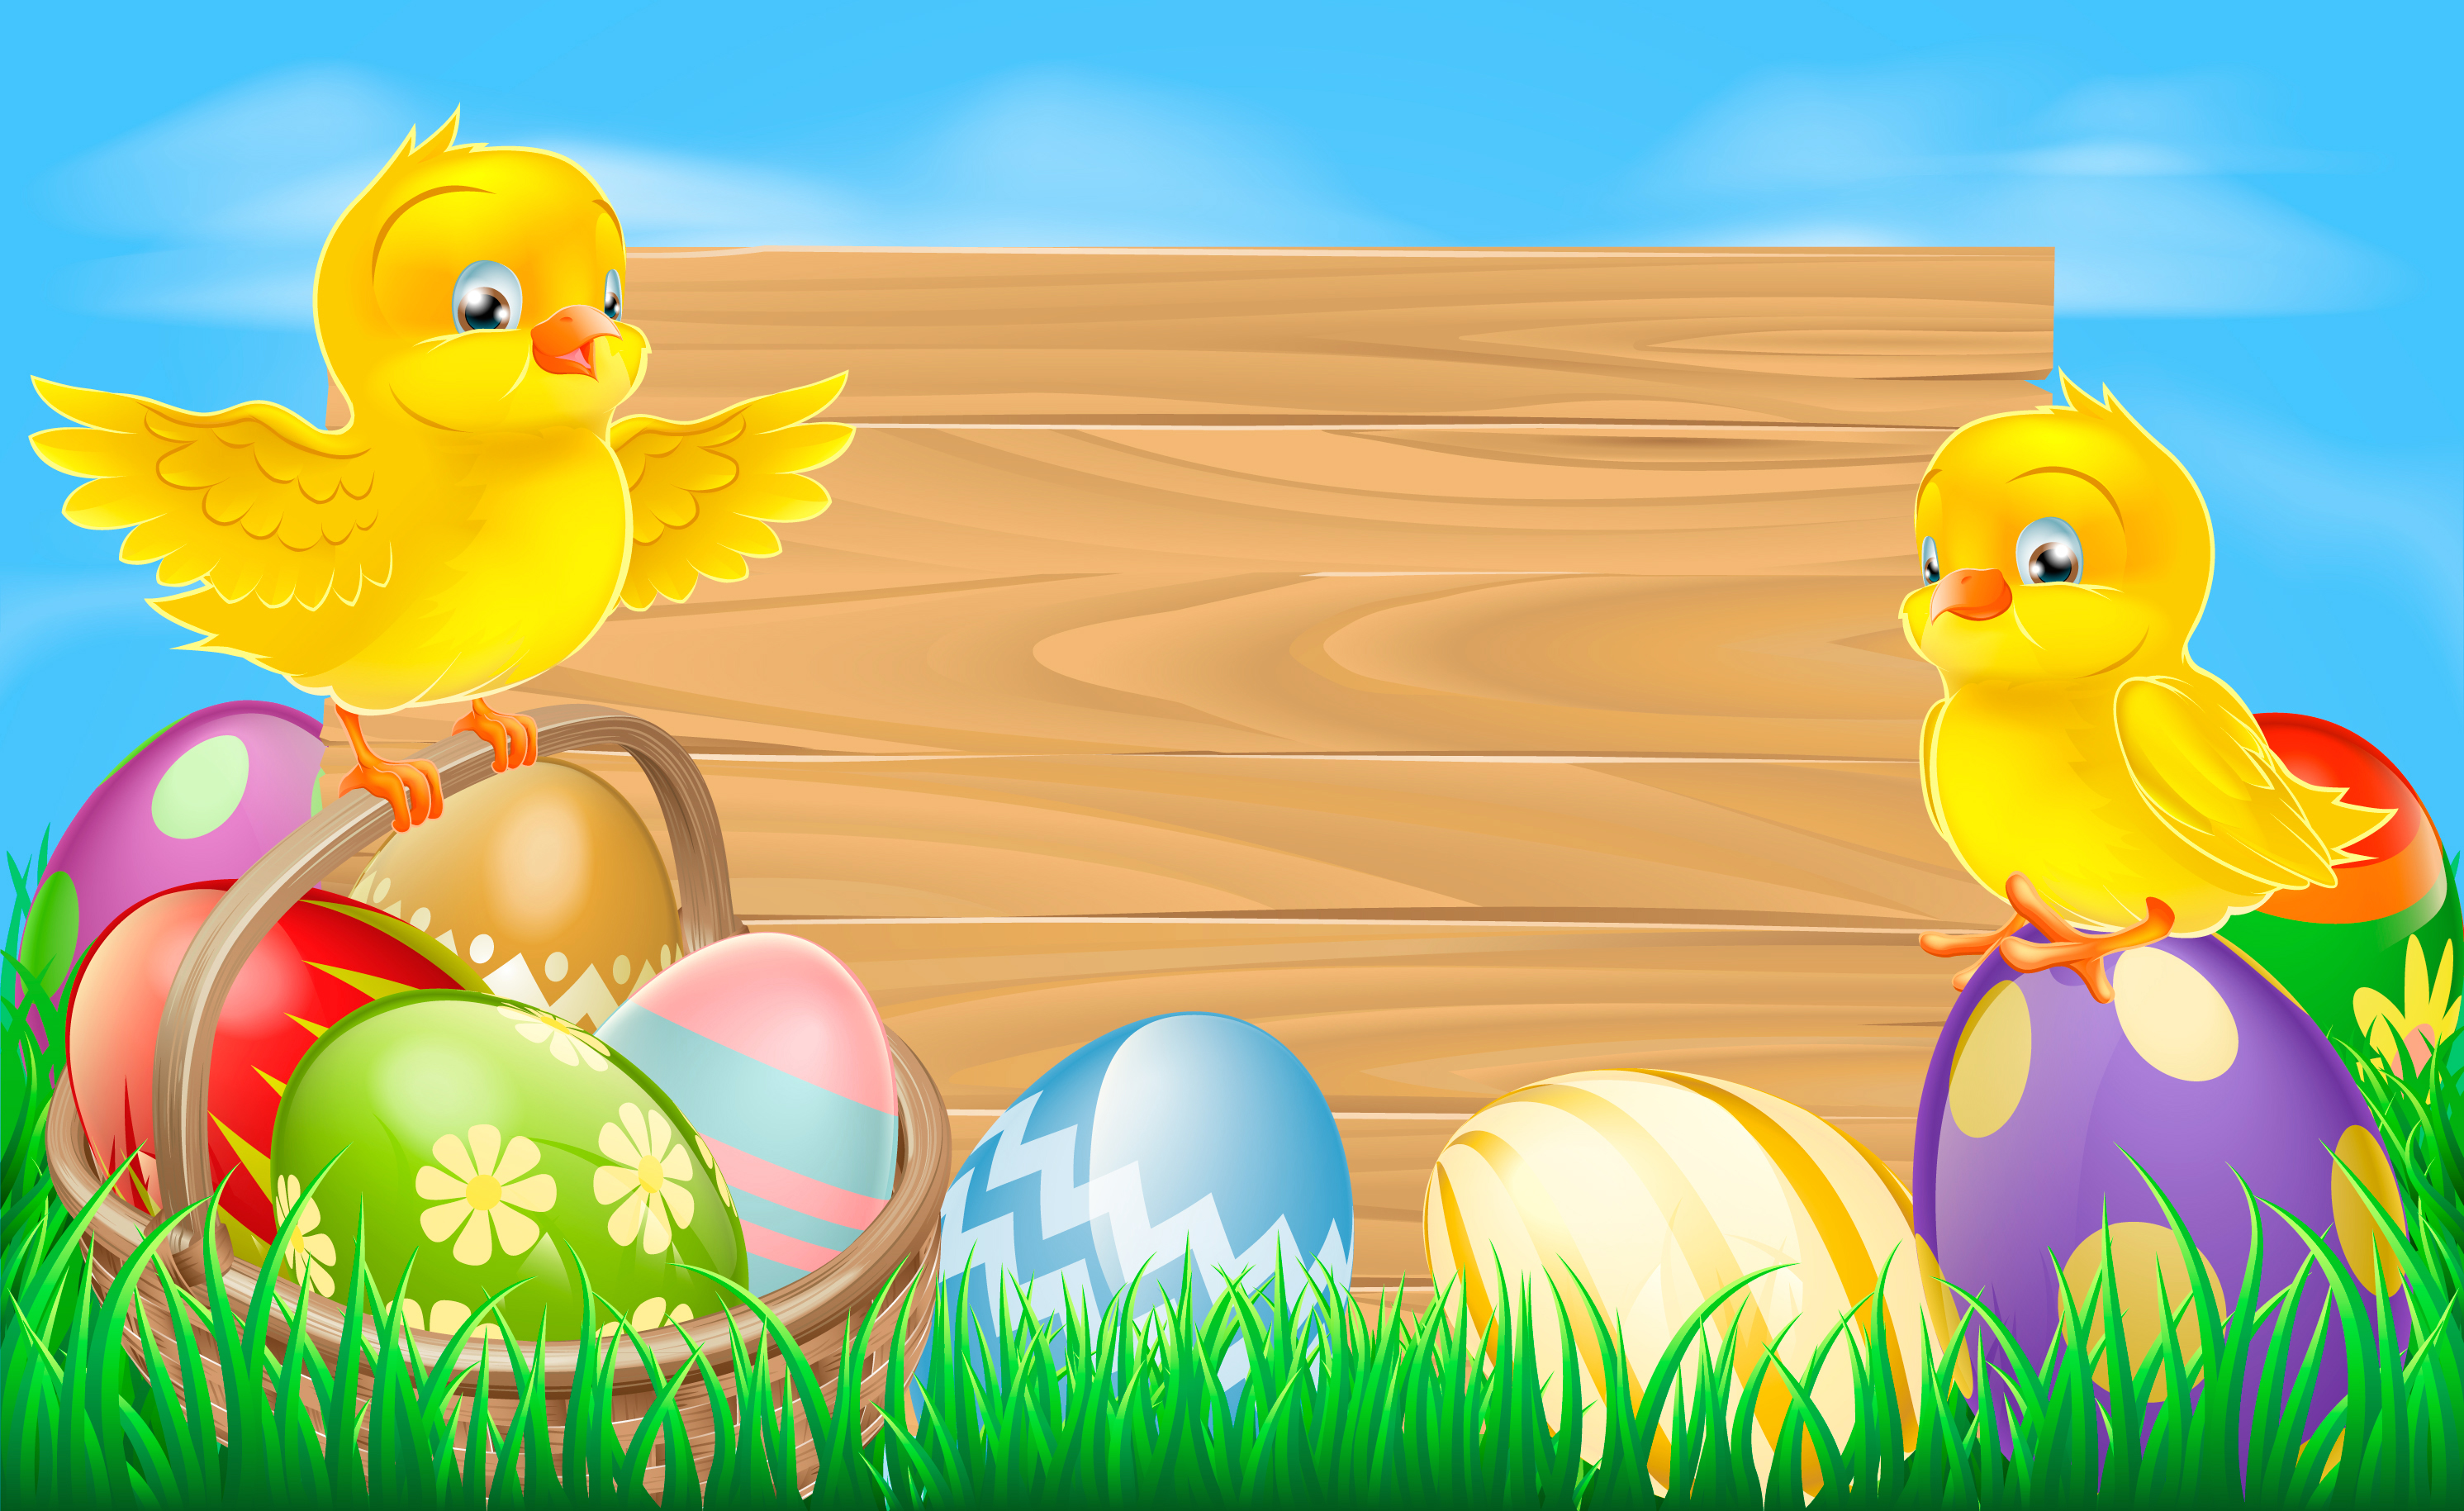 Easter Background with Eggs and Chickens.